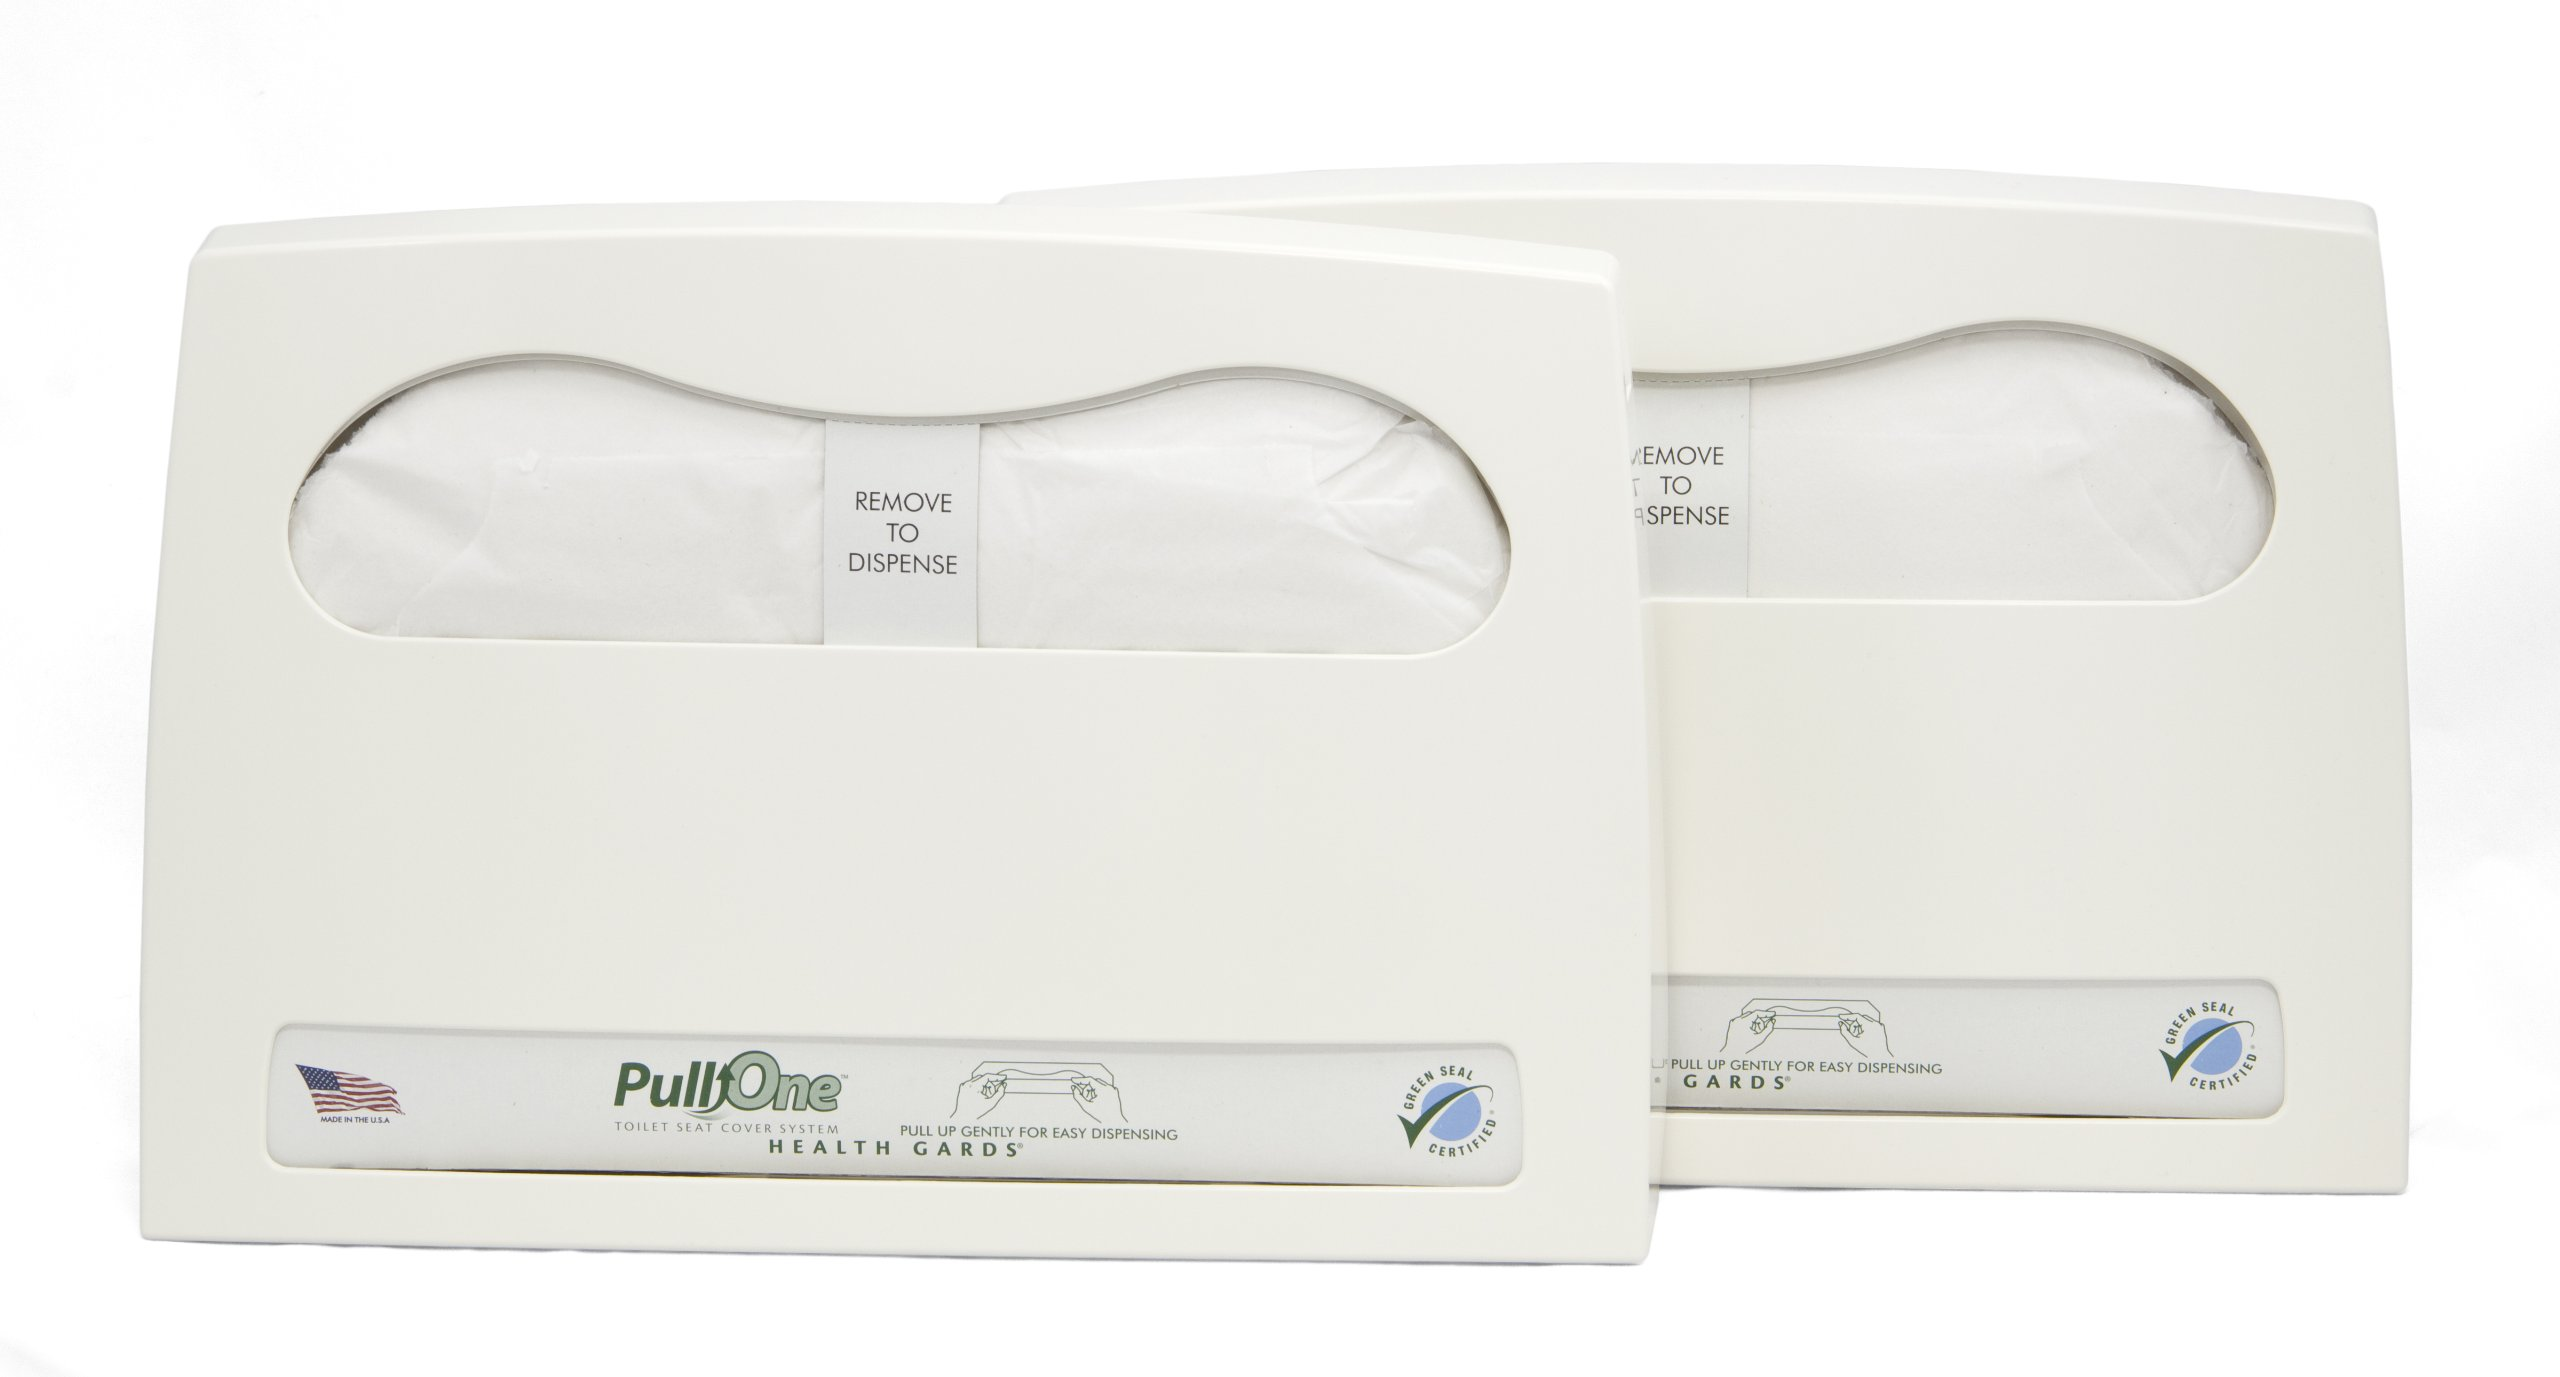 Health Gard PullOne Toilet Seat Cover Starter Kit HGP1KITB (Case of 2 Dispensers, 2 Packs of 600 Toilet Seat Covers)